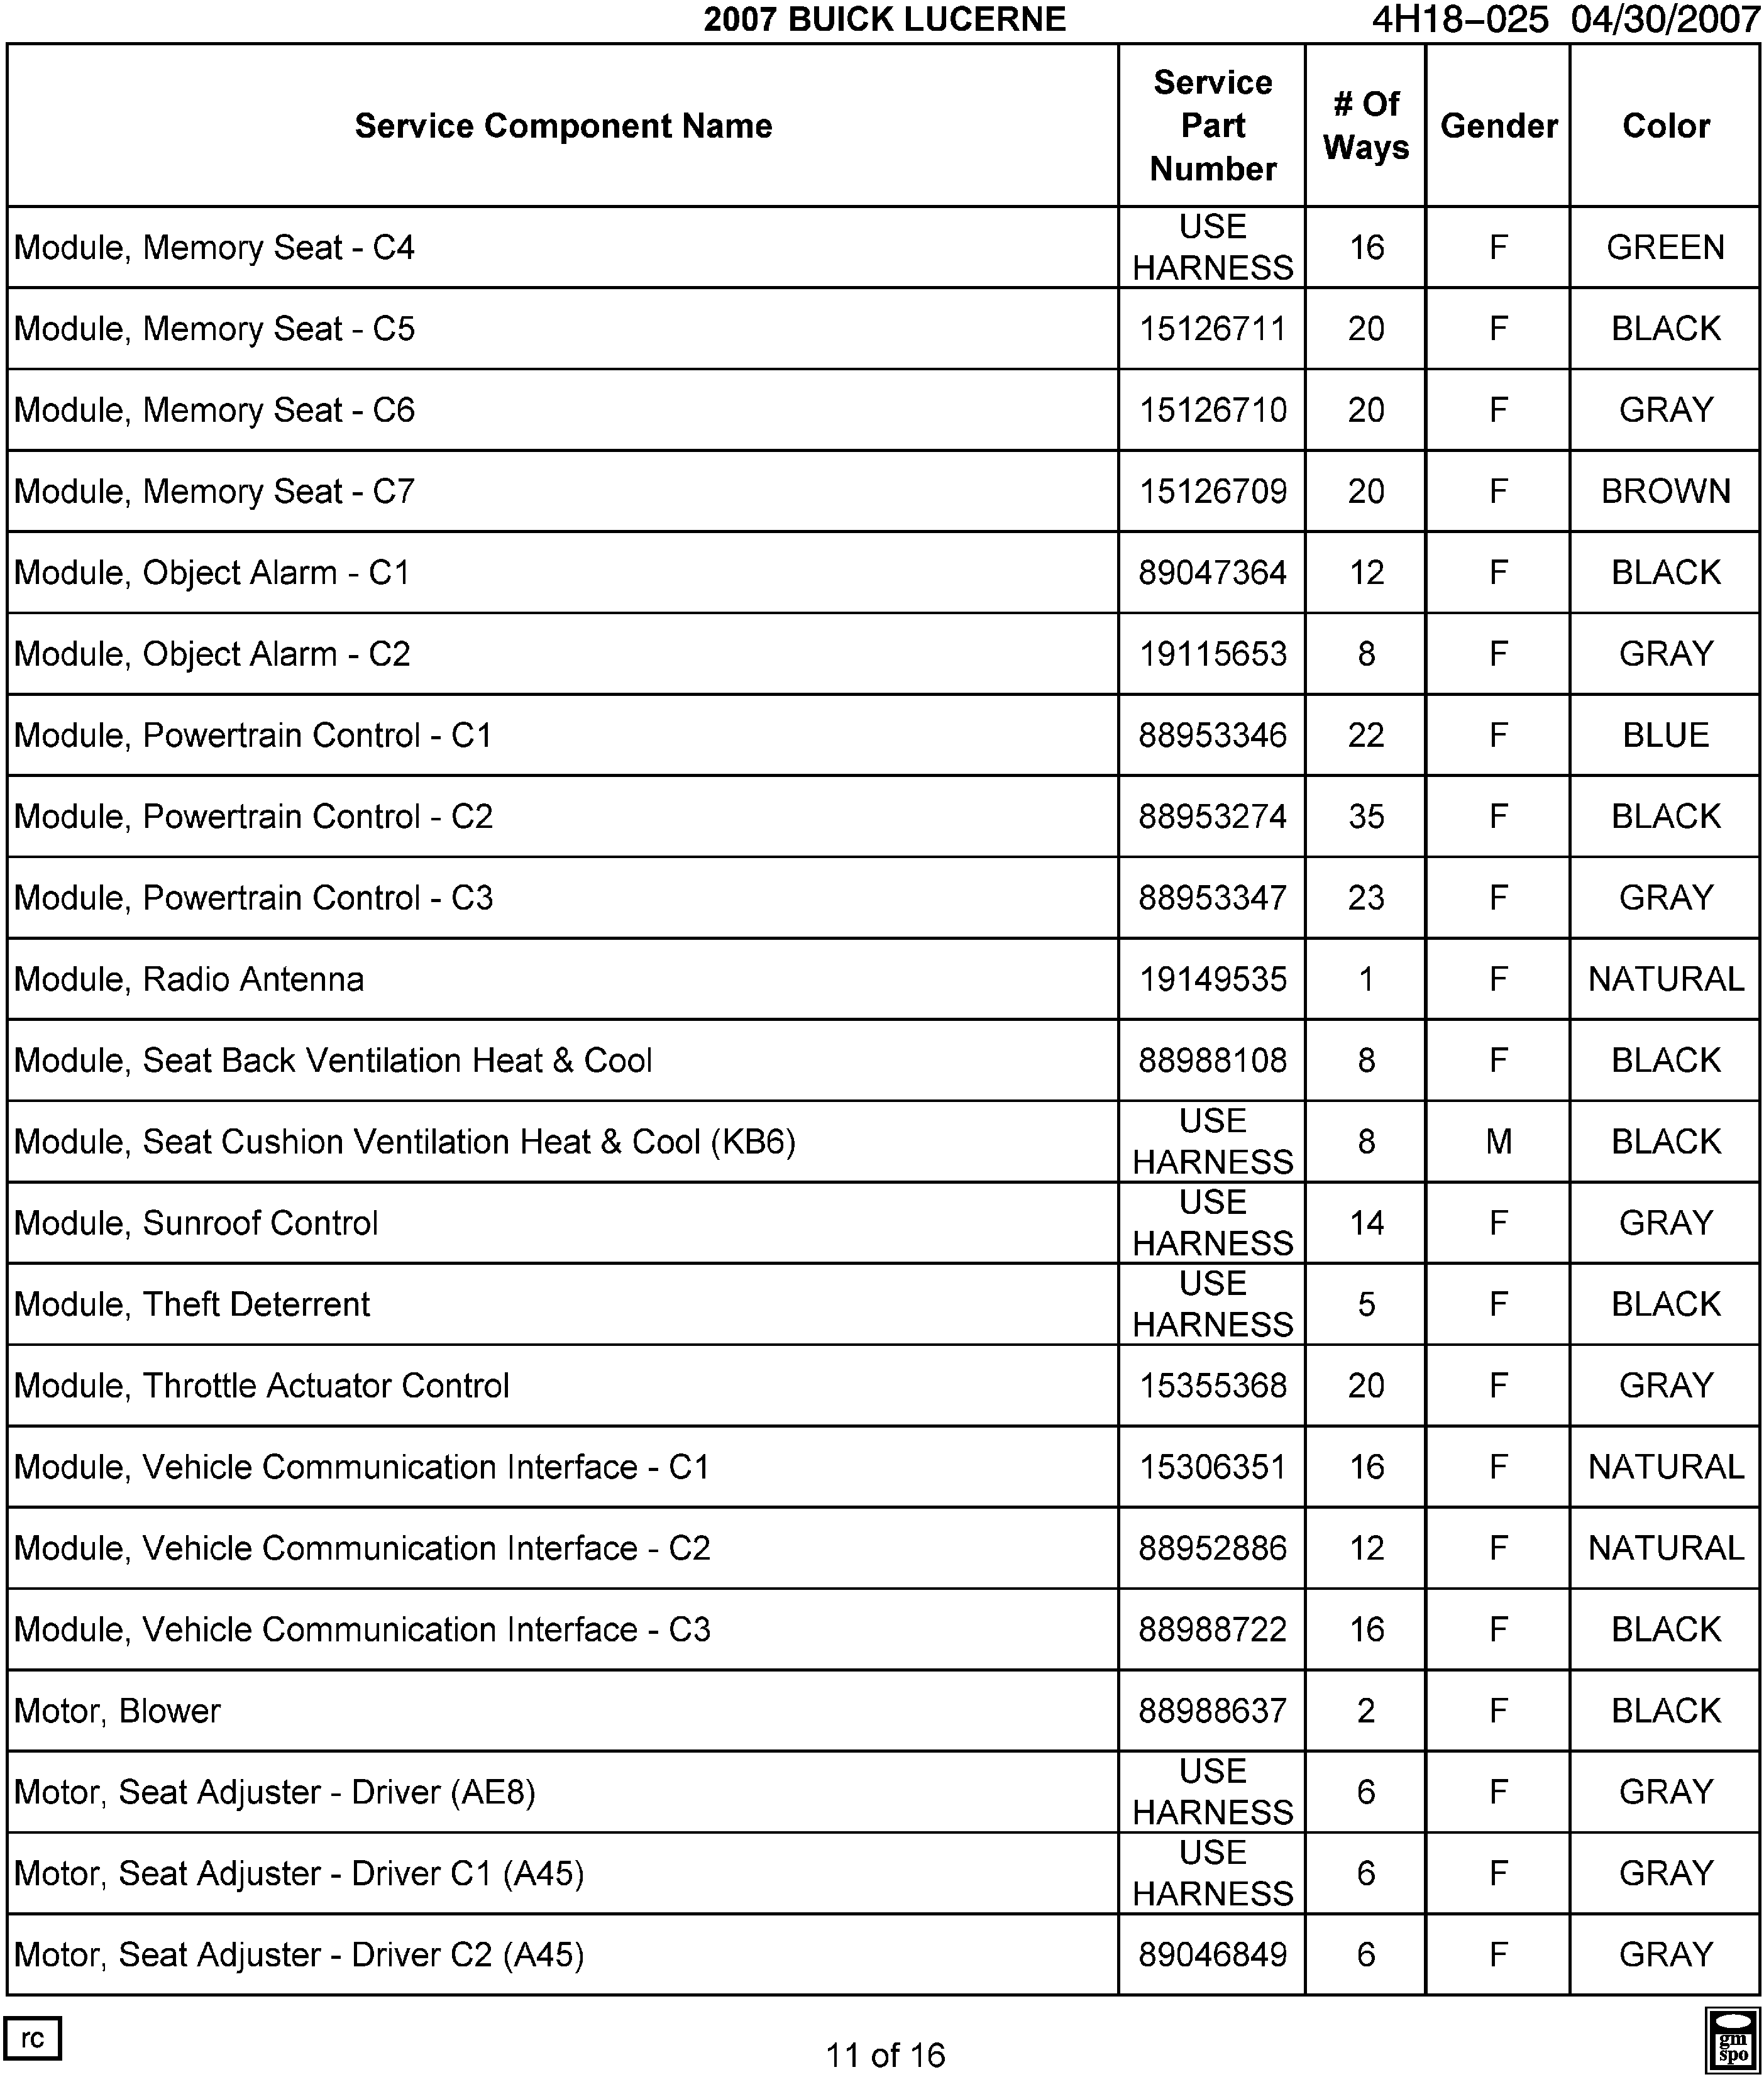 Buick Lucerne - H ELECTRICAL CONNECTOR LIST BY NOUN NAME